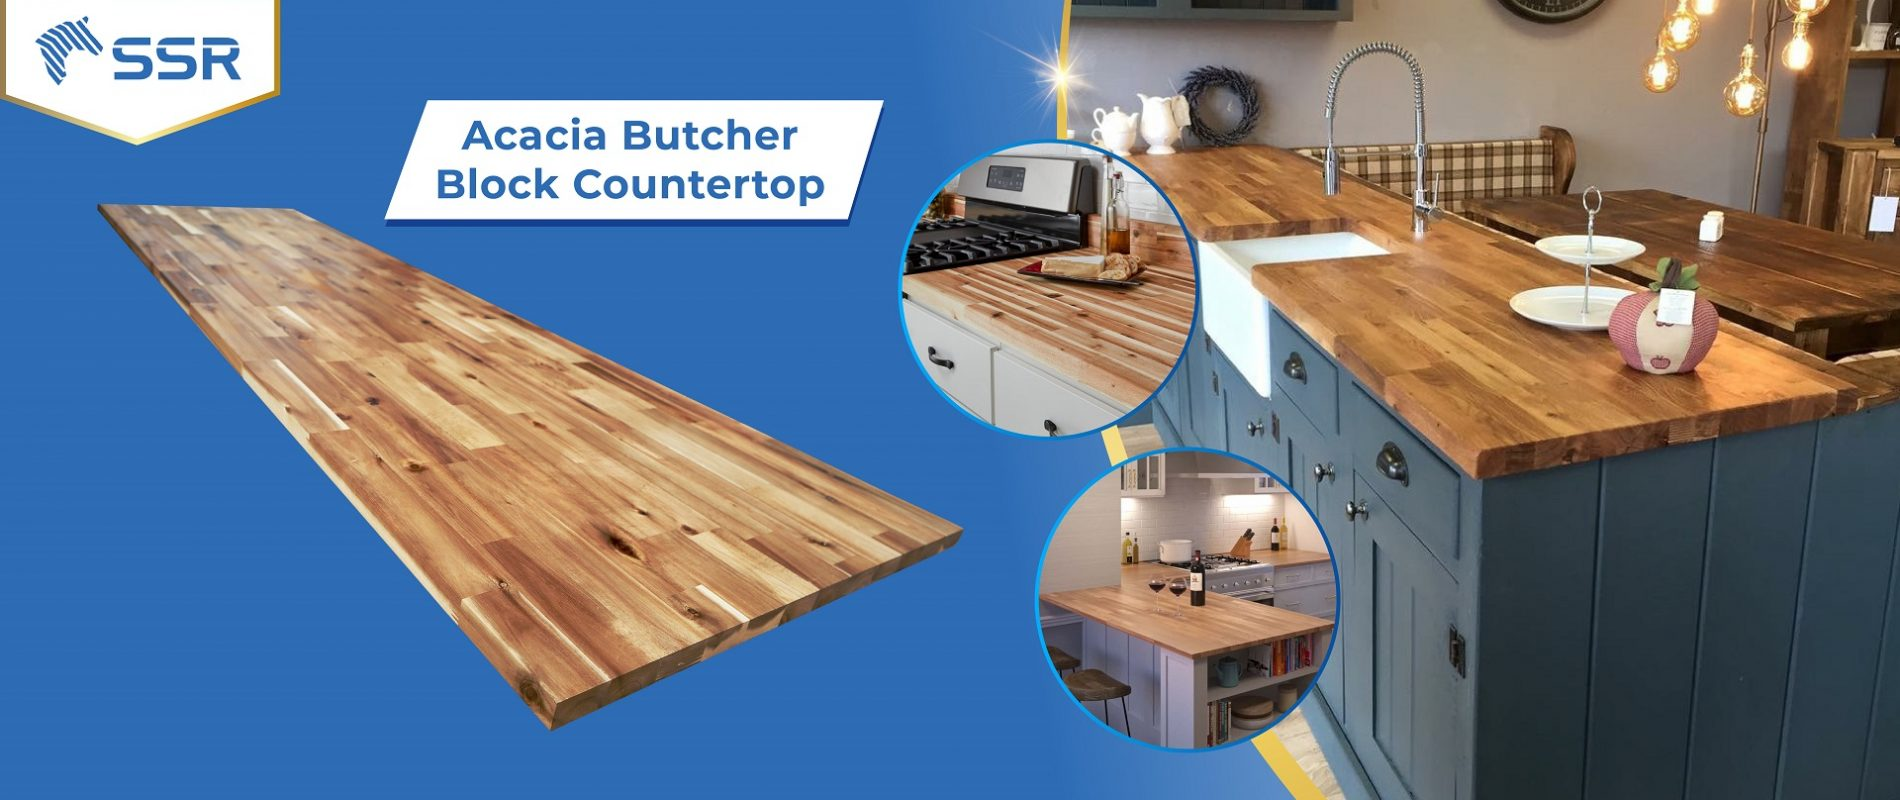 Acacia Solid Wood Hard Wood Wood Plank Wood Panel Wood Board Oil Coating Oil Finish Countertop Butcher Block Table Top Wood Industry International Wood Product Supplier FSC Certified International Business Import Export